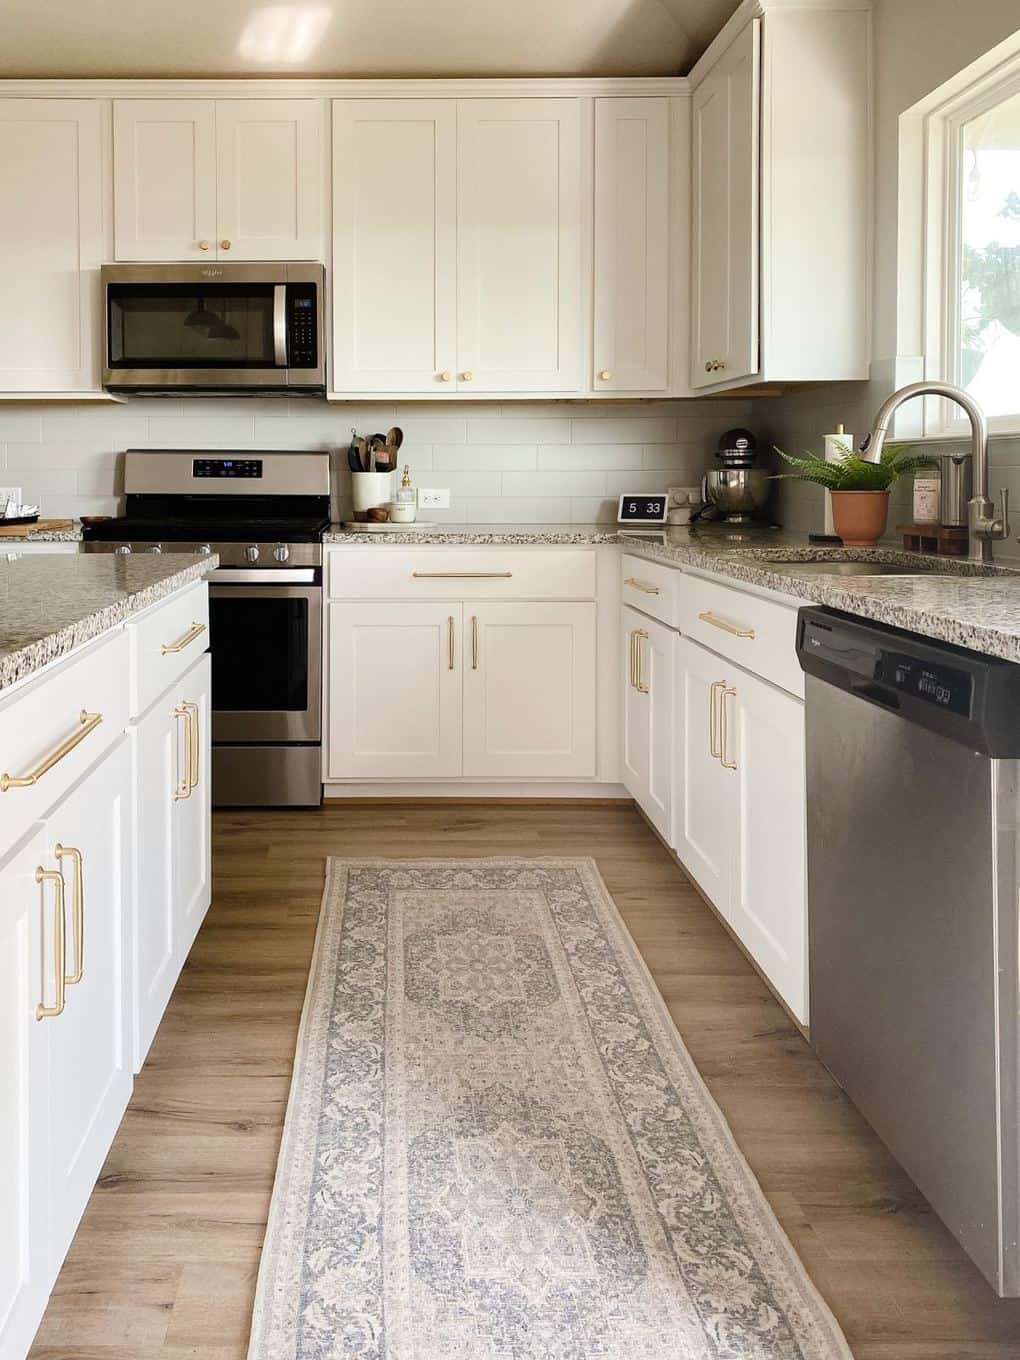 all-white kitchen with a vintage-style Ruggable runner